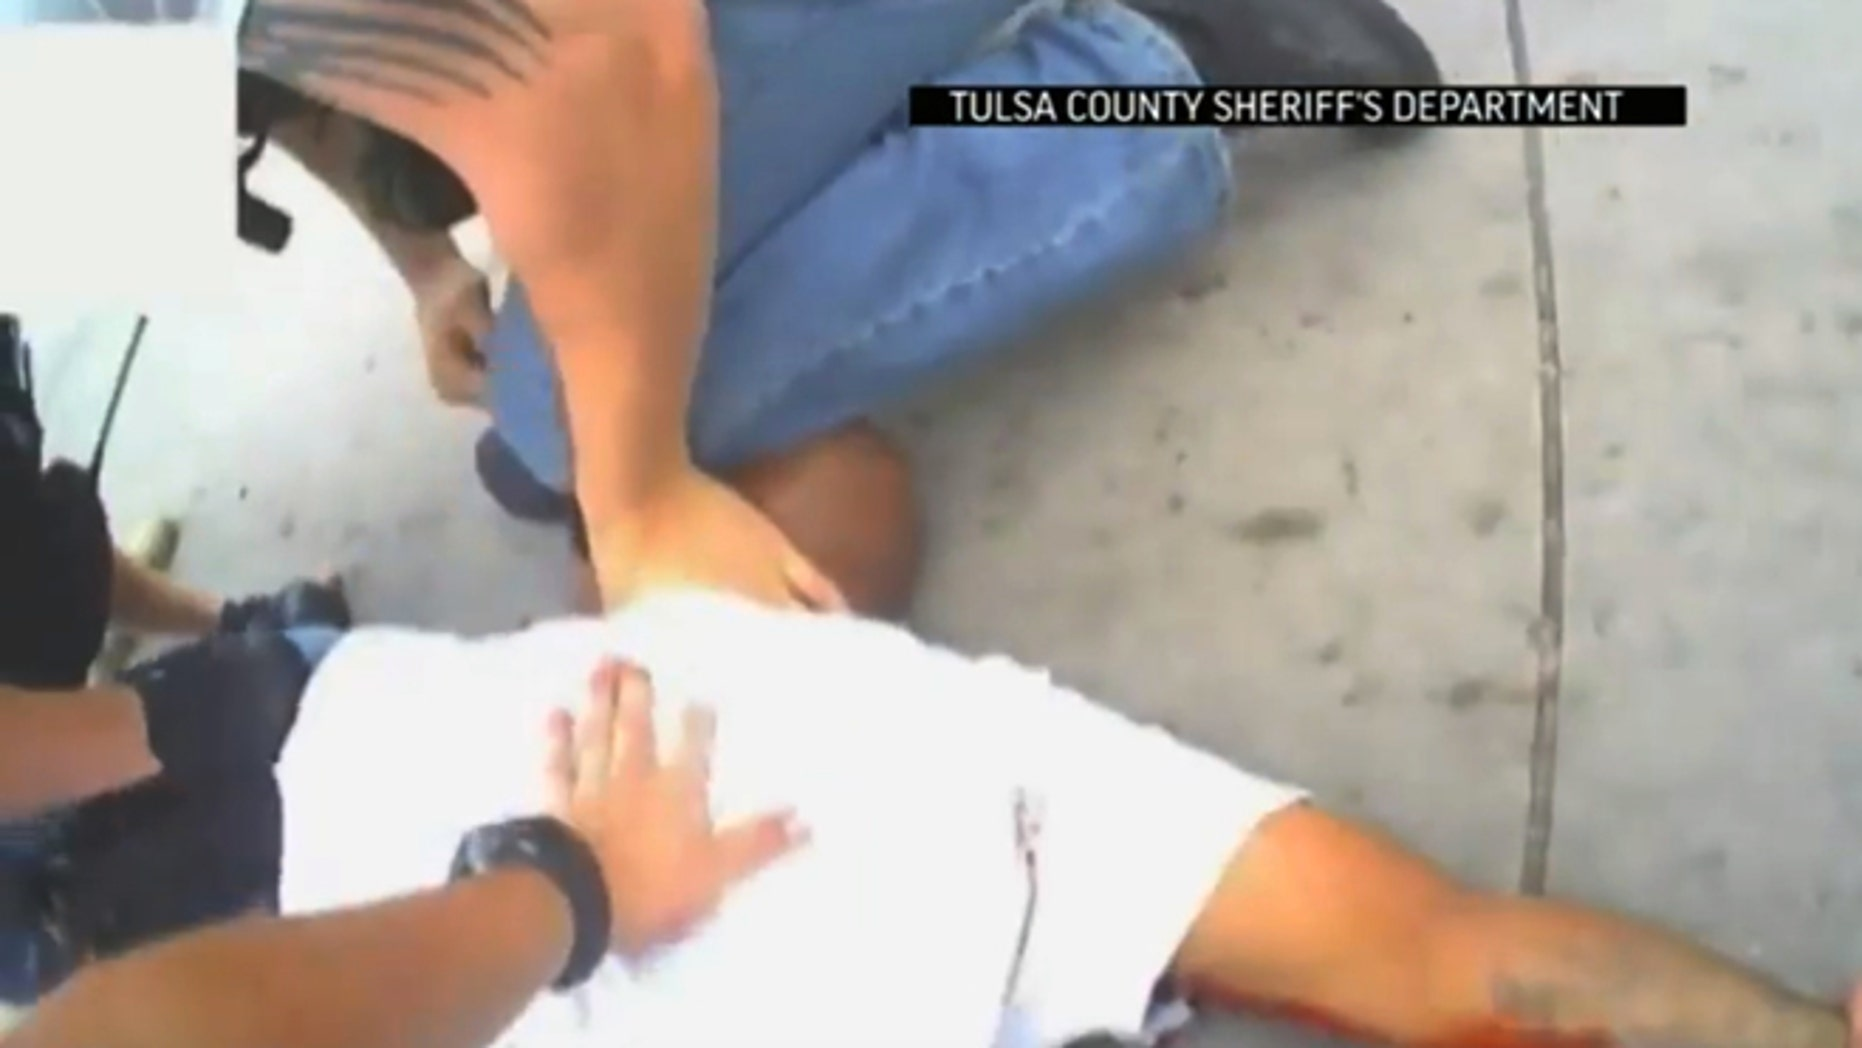 April 2, 2015: In this screen shot from a video provided by the Tulsa County Sheriff's Office, police restrain 44-year-old Eric Harris after he was chased down and tackled by a Tulsa County Deputy, and then shot by a reserve sheriff's deputy while in custody, in Tulsa, Okla.